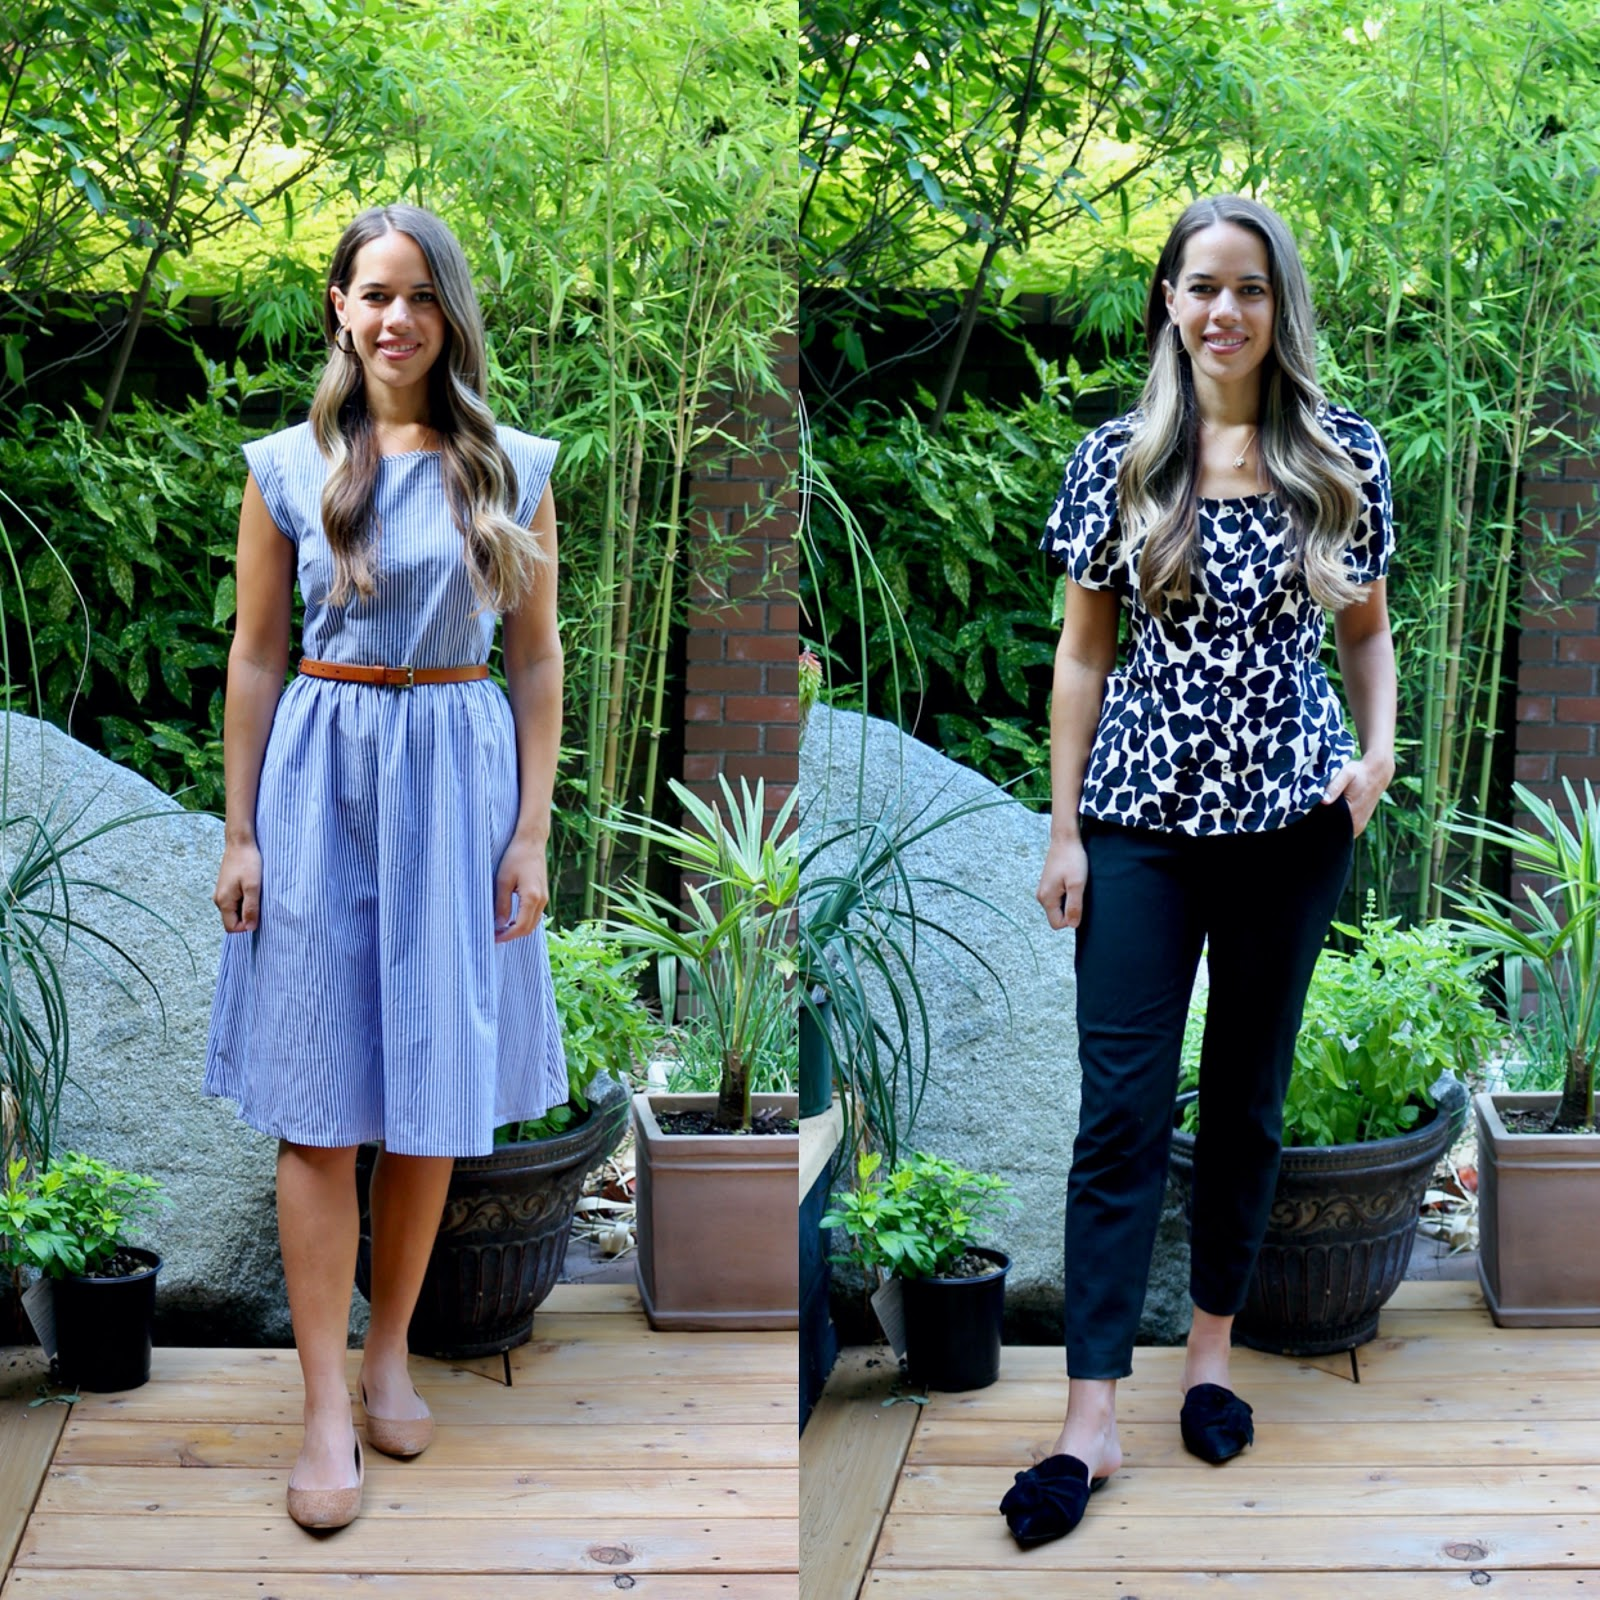 Jules in Flats - What I Wore to Work in August (Business Casual Workwear on a Budget)